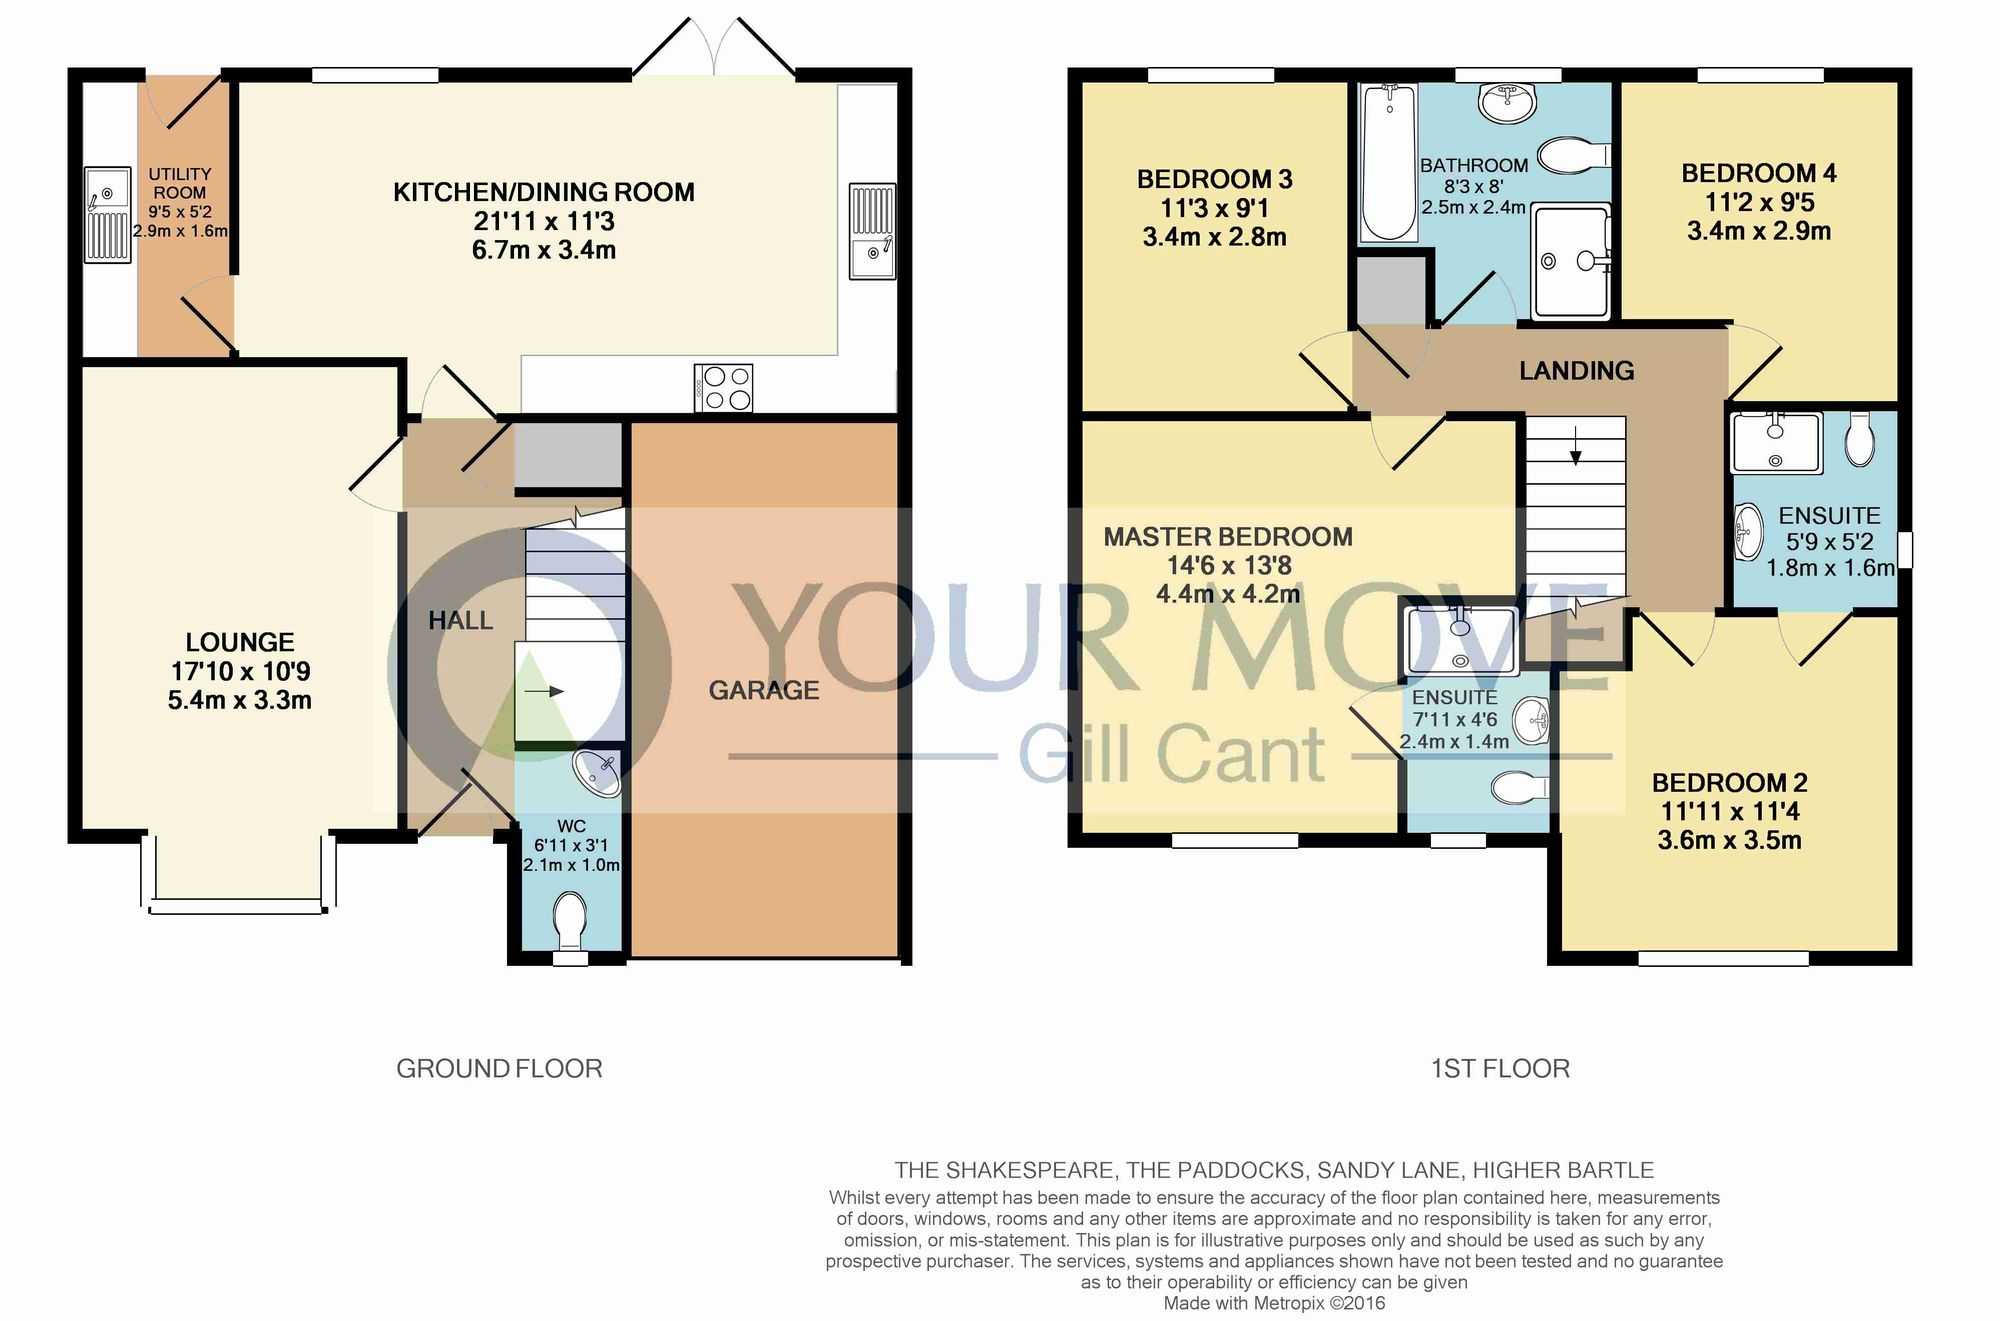 property for sale in preston lancashire find houses and